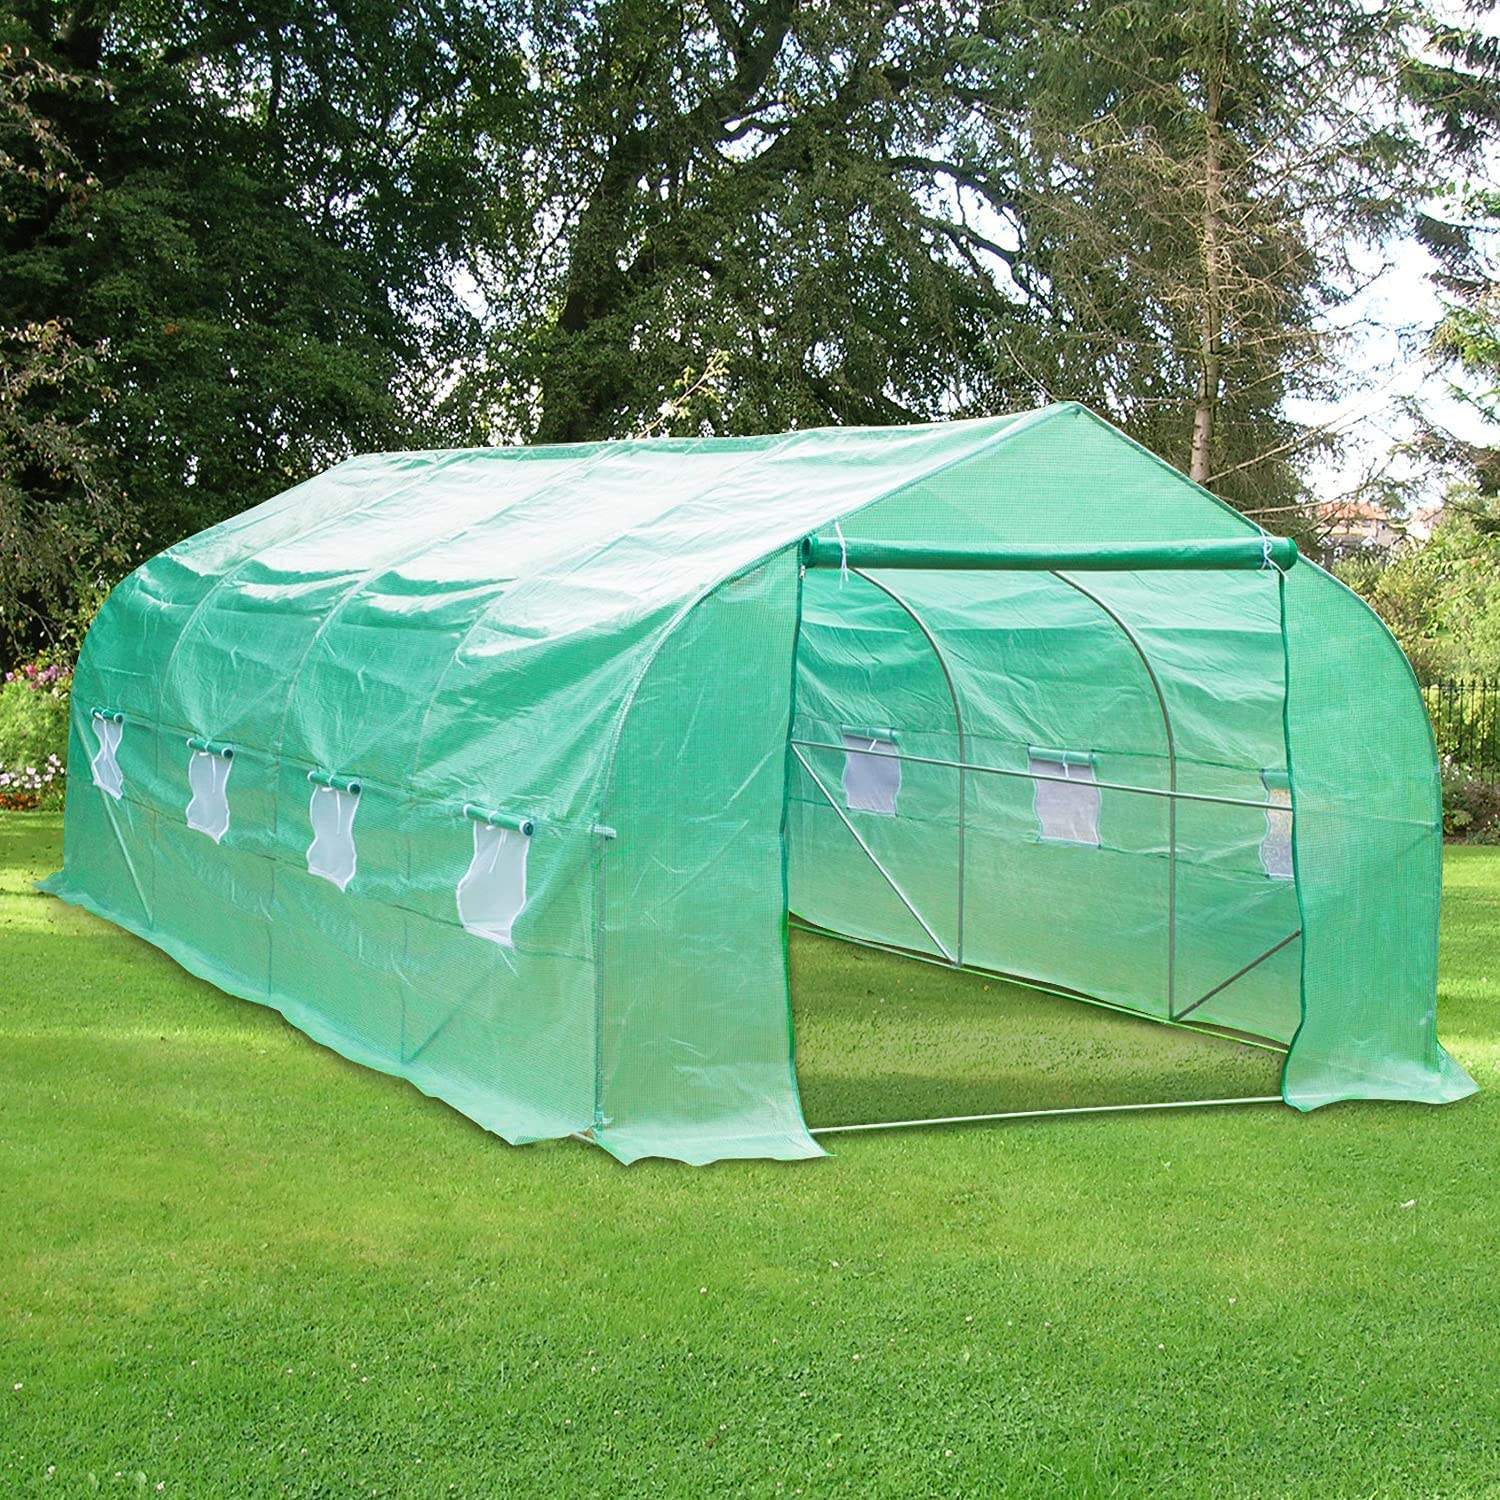 Green House,Walk-in Plant Hot House for Outdoors,20'x10'x7' Large Heavy Duty Portable Greenhouse,Galvanized Steel Frame Tunnel Garden with Zipper Door and 8 Roll-Up Windows,Gardening Tent